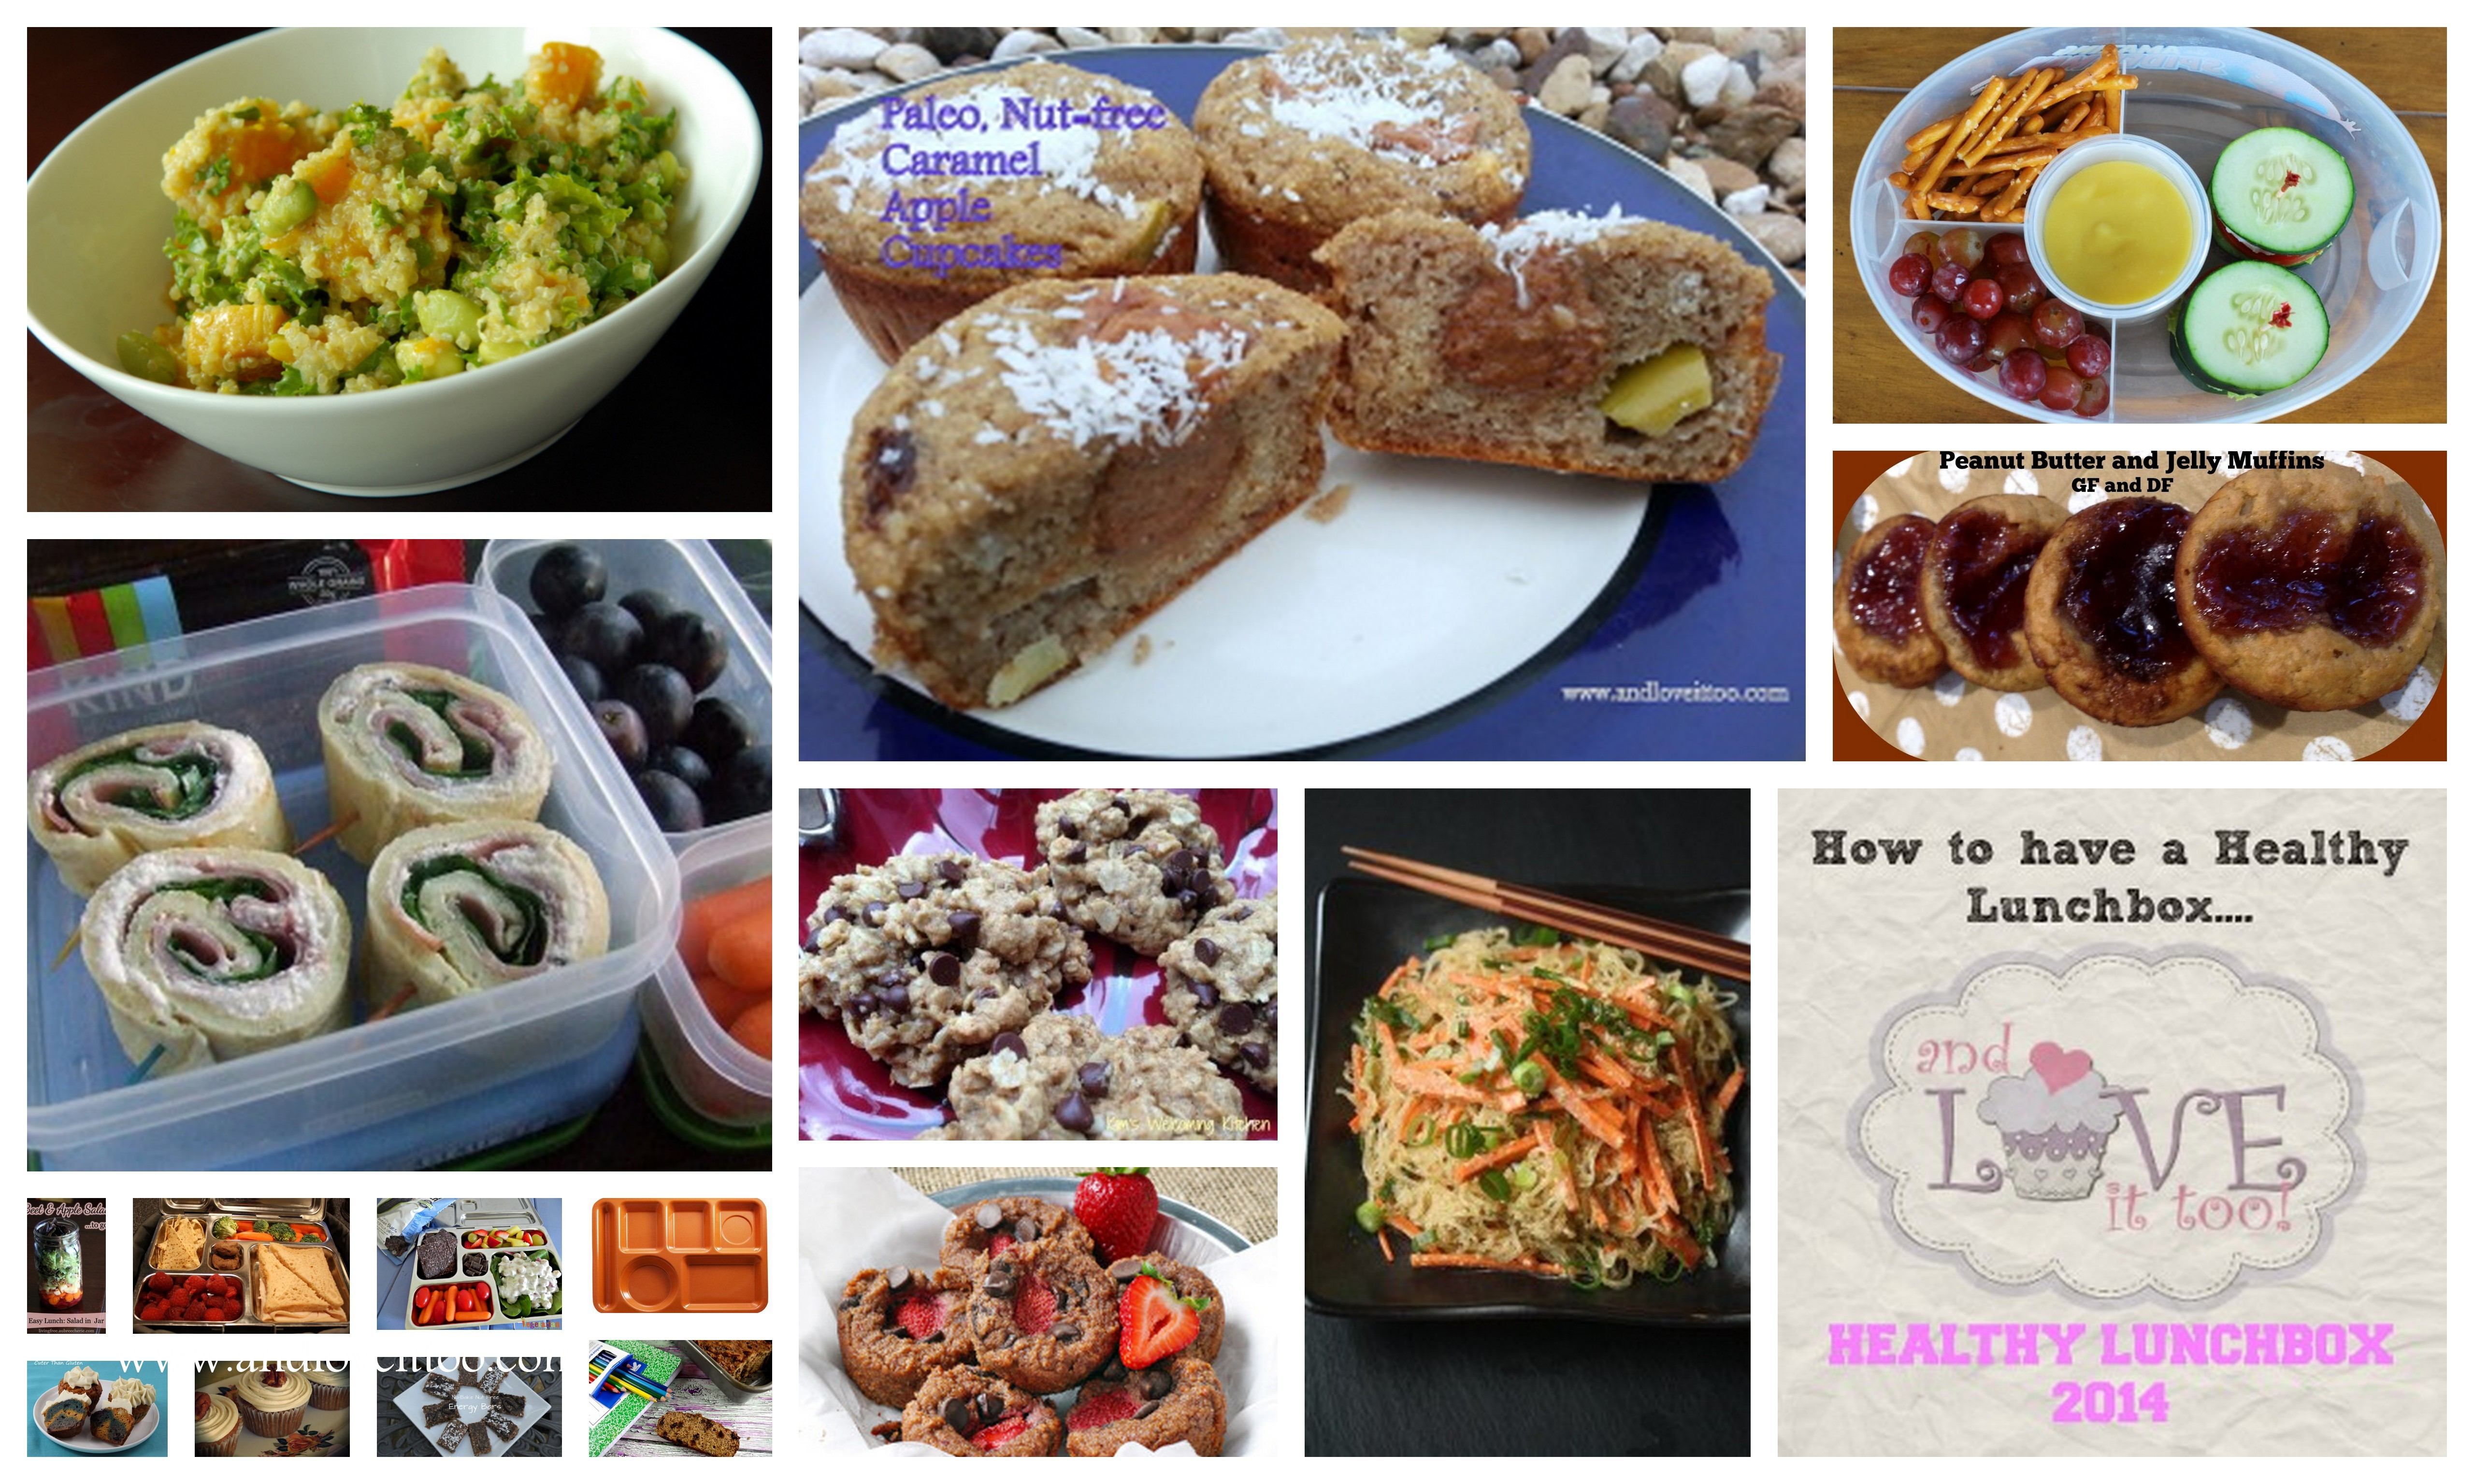 Healthy Lunchbox 2014: The Ultimate Collection and Giveaway Extravaganza!